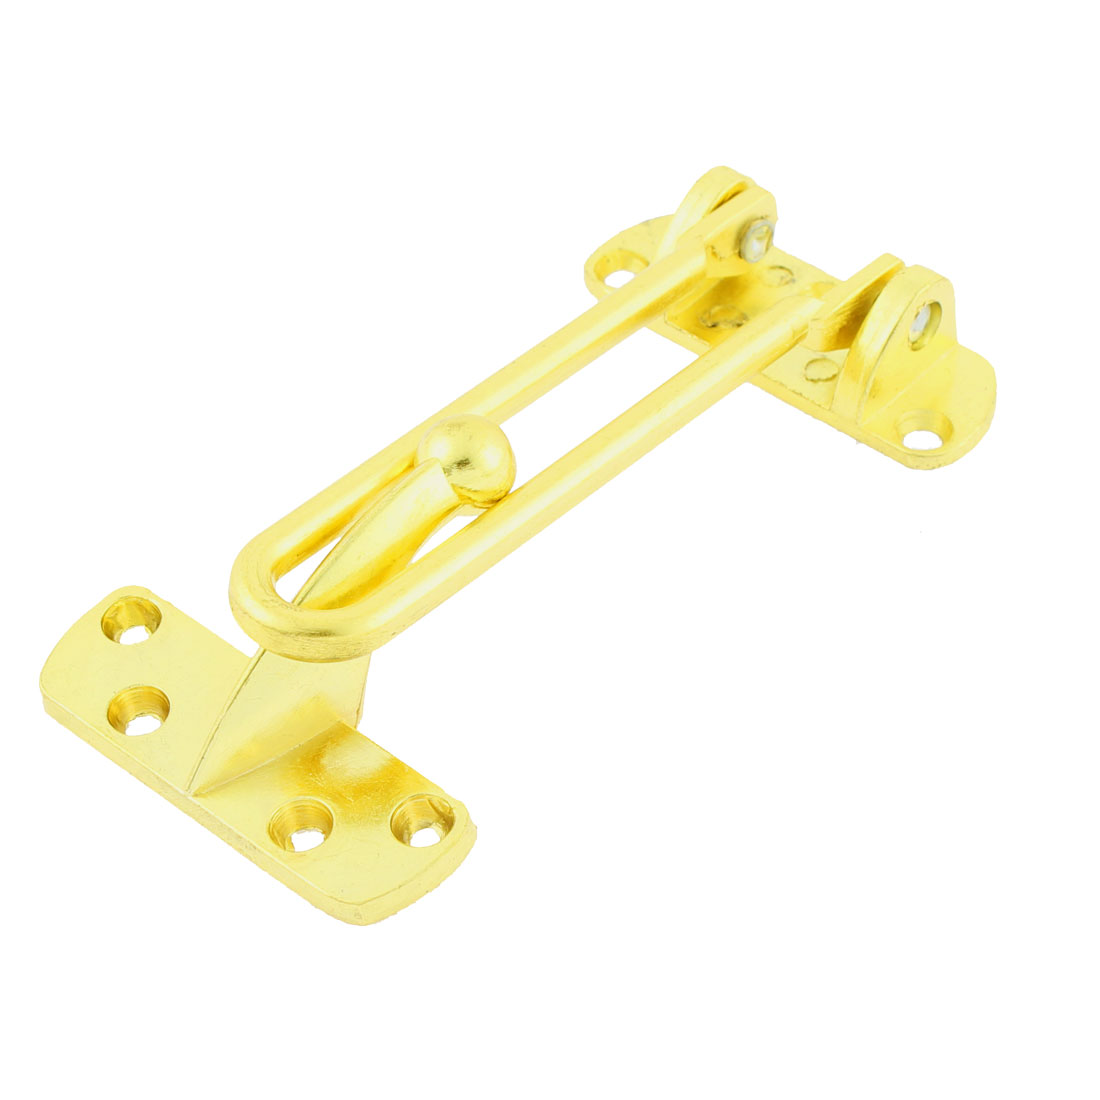 Home Office Metal Swing Arm Door Security Chain Locking Guard Latch Gold Tone